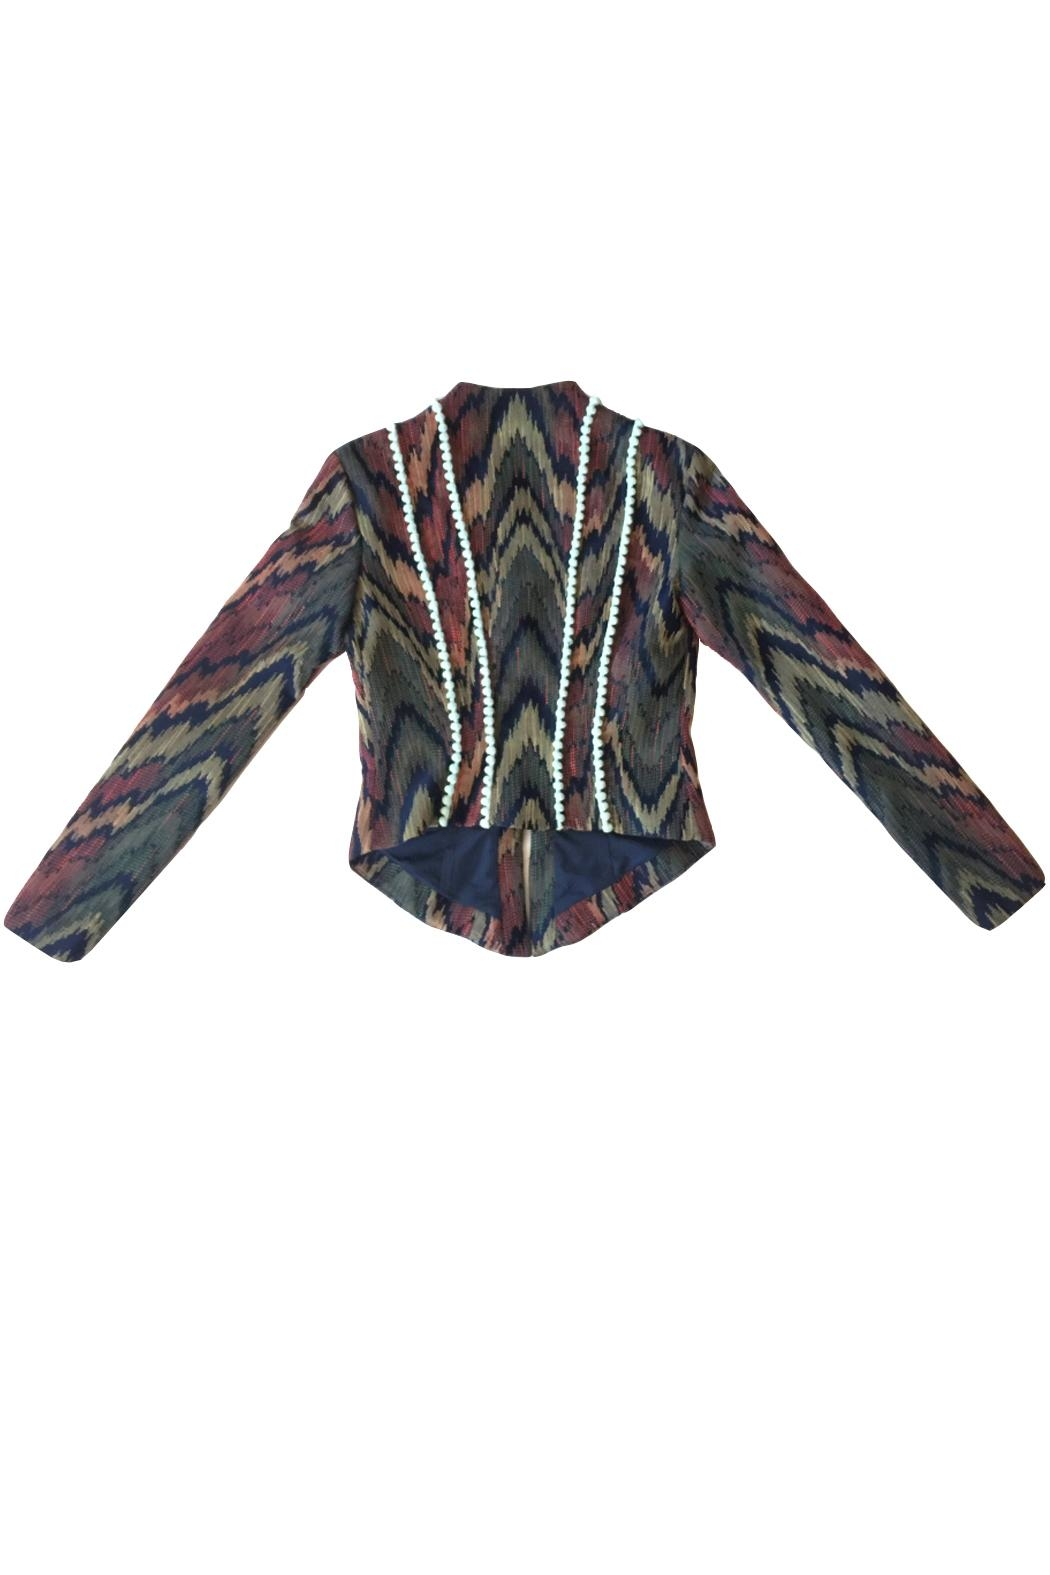 Viesca y Viesca Printed Fitted Blazer - Side Cropped Image